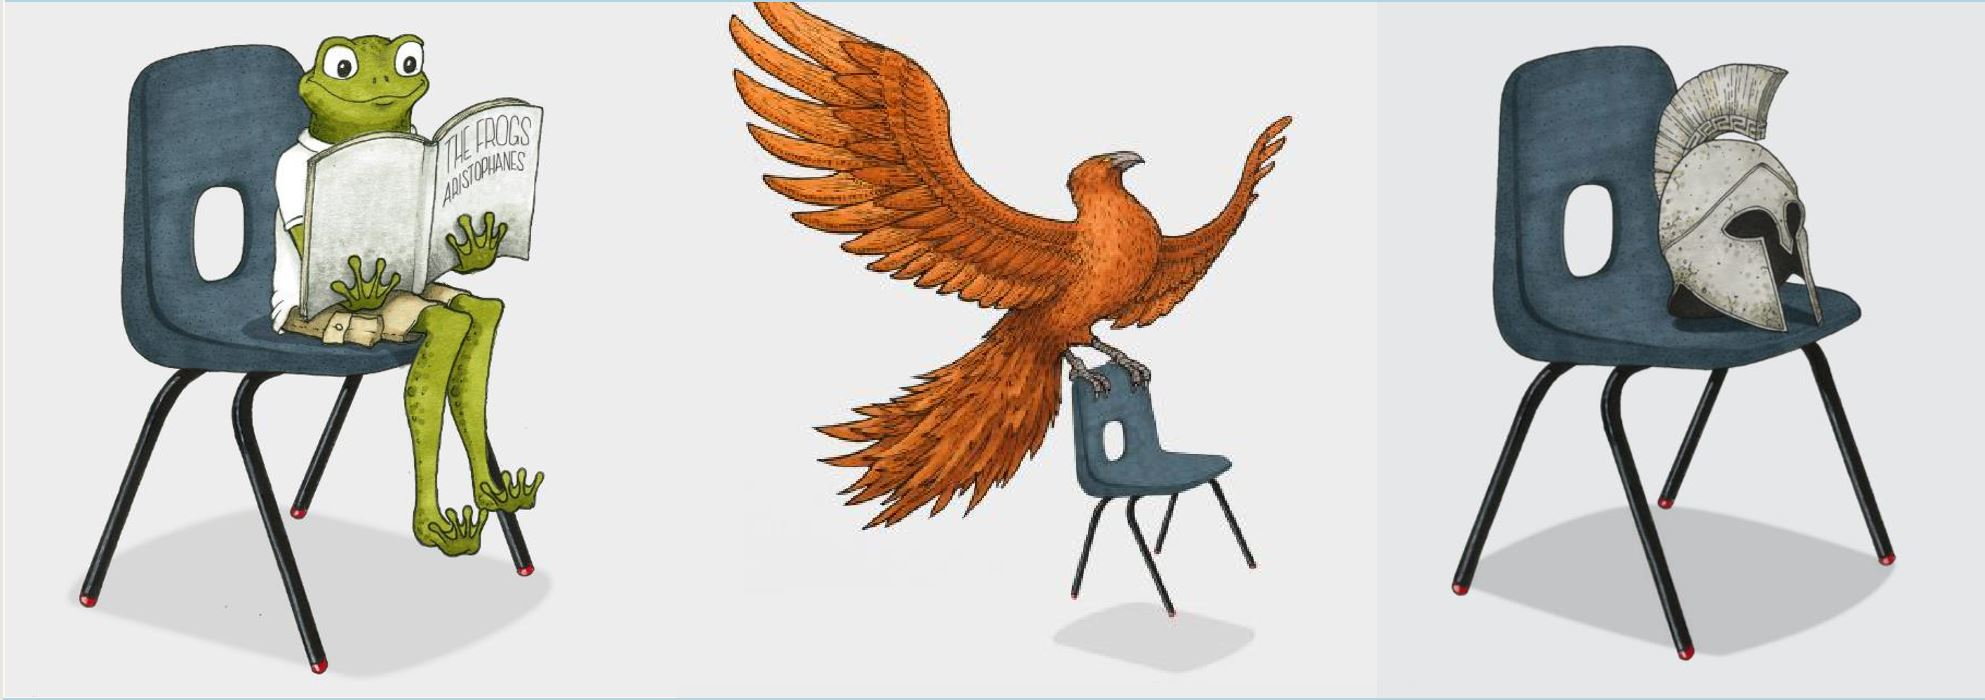 Image of a frog, phoenix and a helmet on classroom chairs